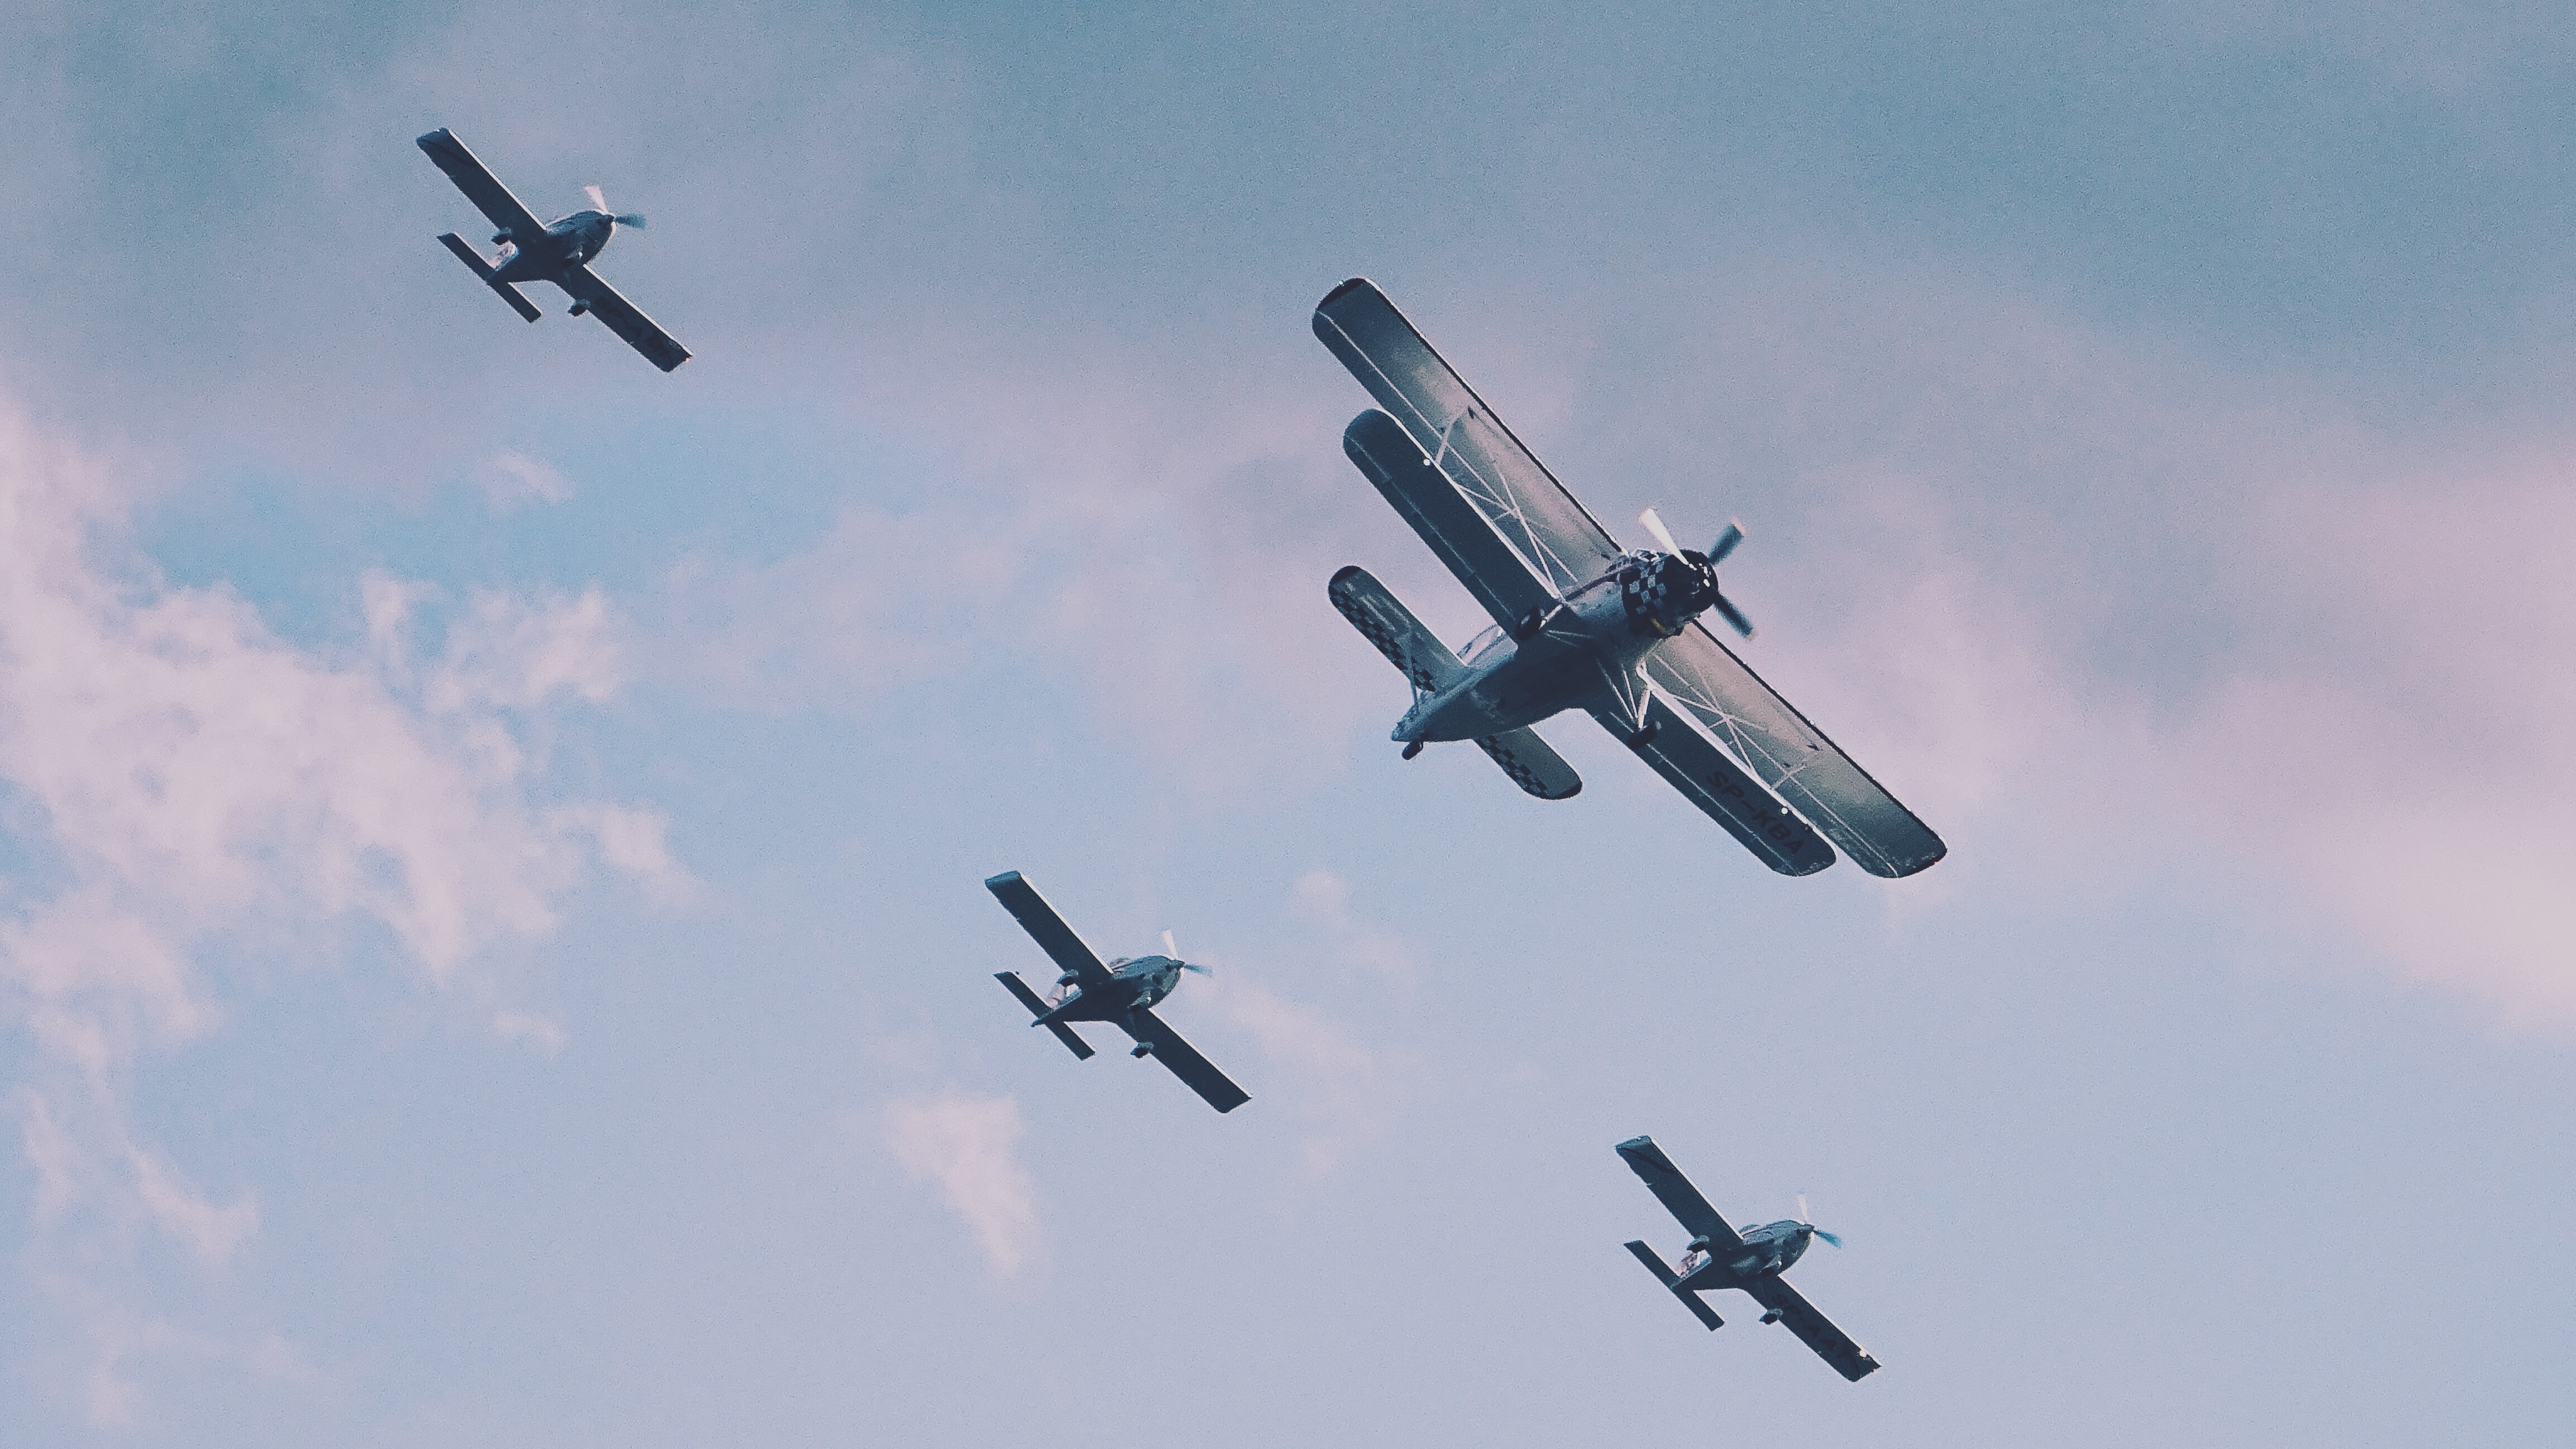 A fleet of vintage planes flying at an airshow